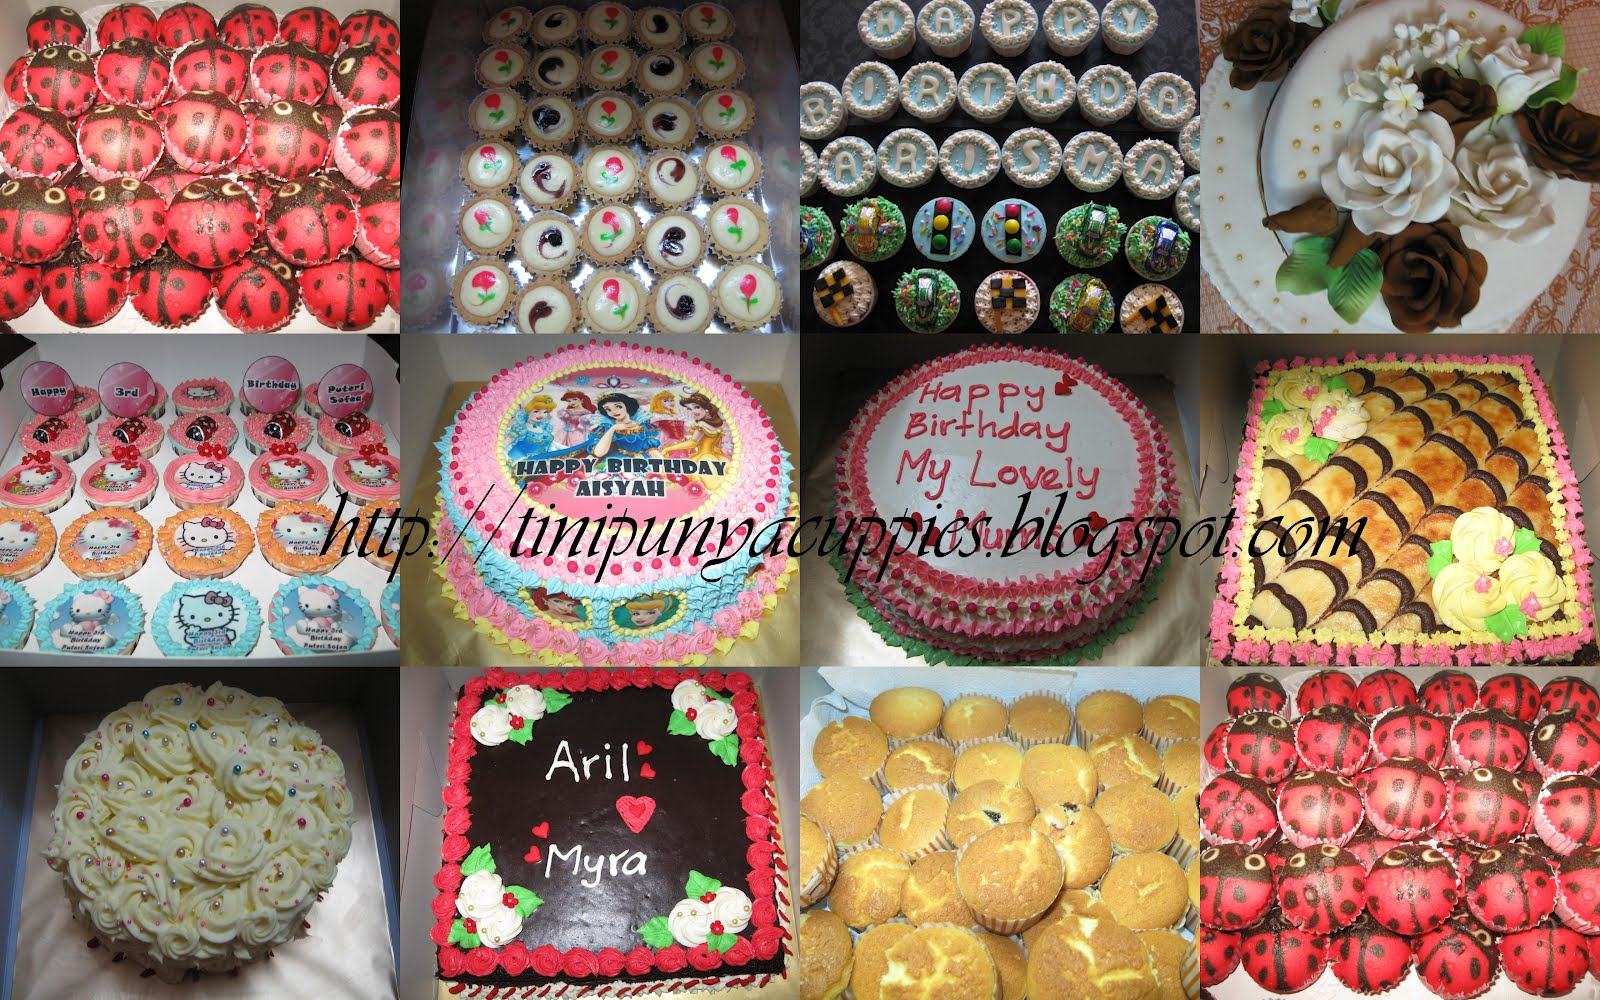 Tini Cuppies